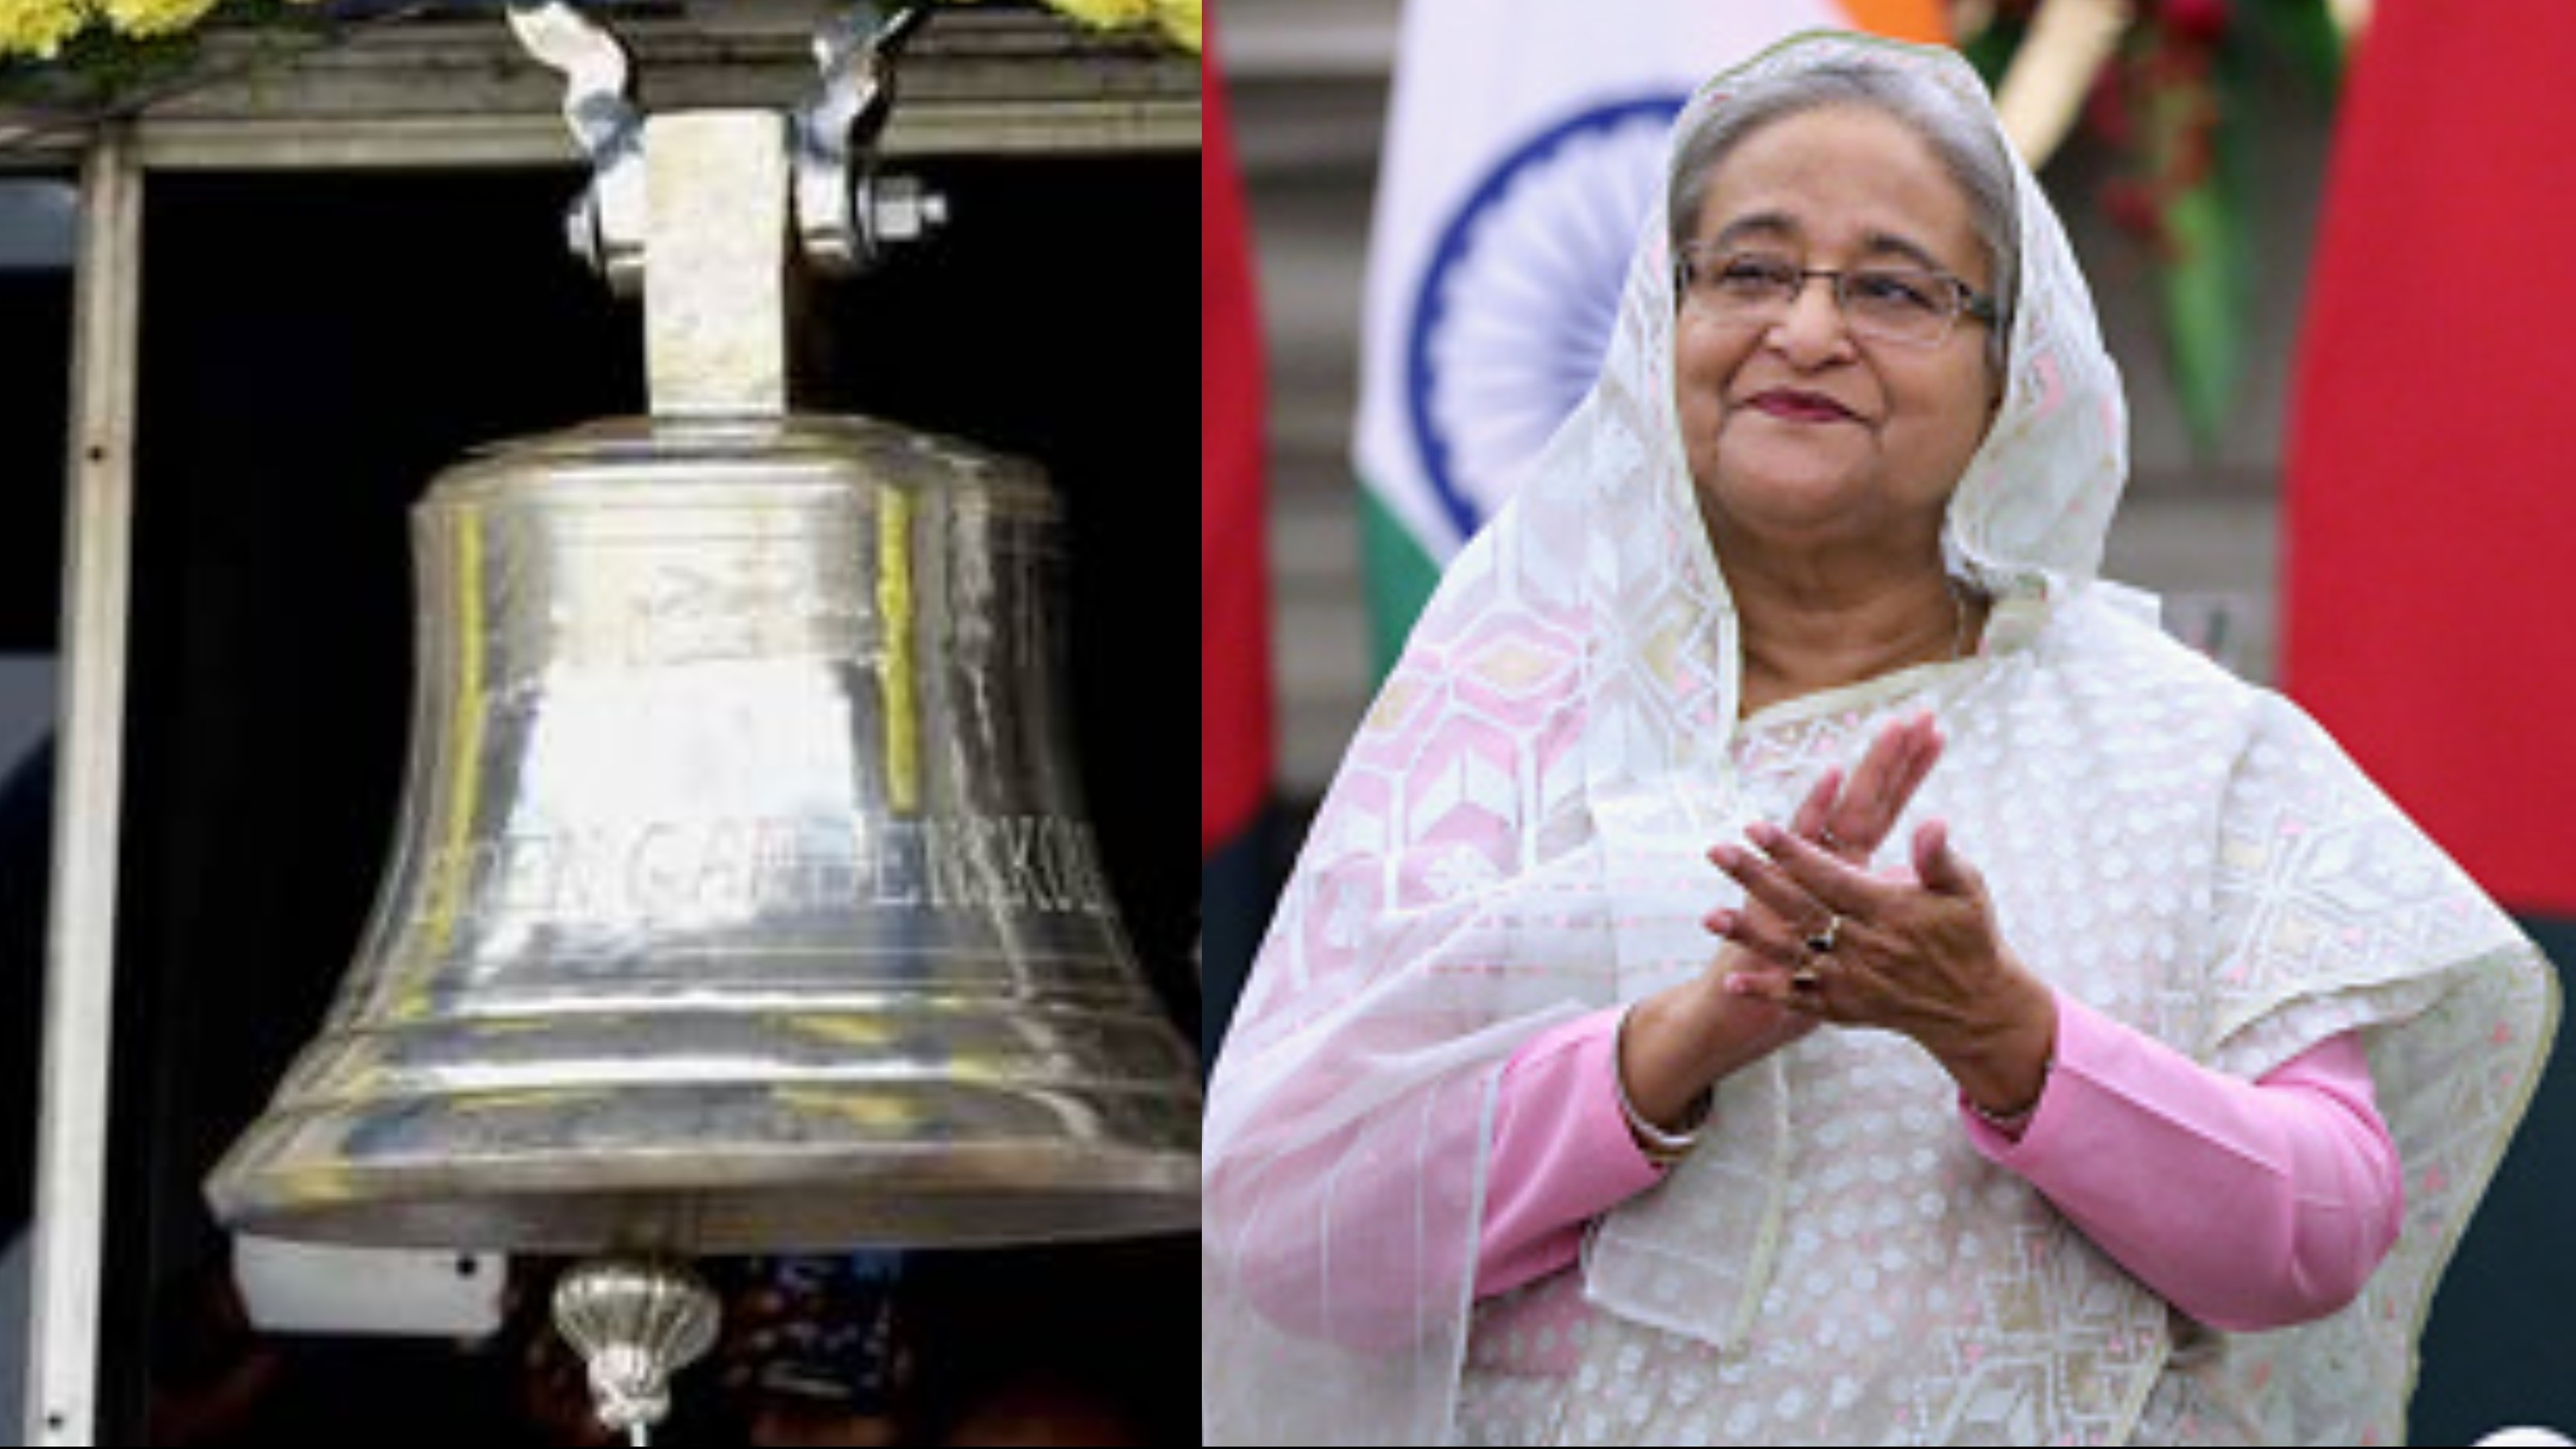 IND v BAN 2019: Bangladesh PM Sheikh Hasina to ring the Eden bell for historic day-night Test